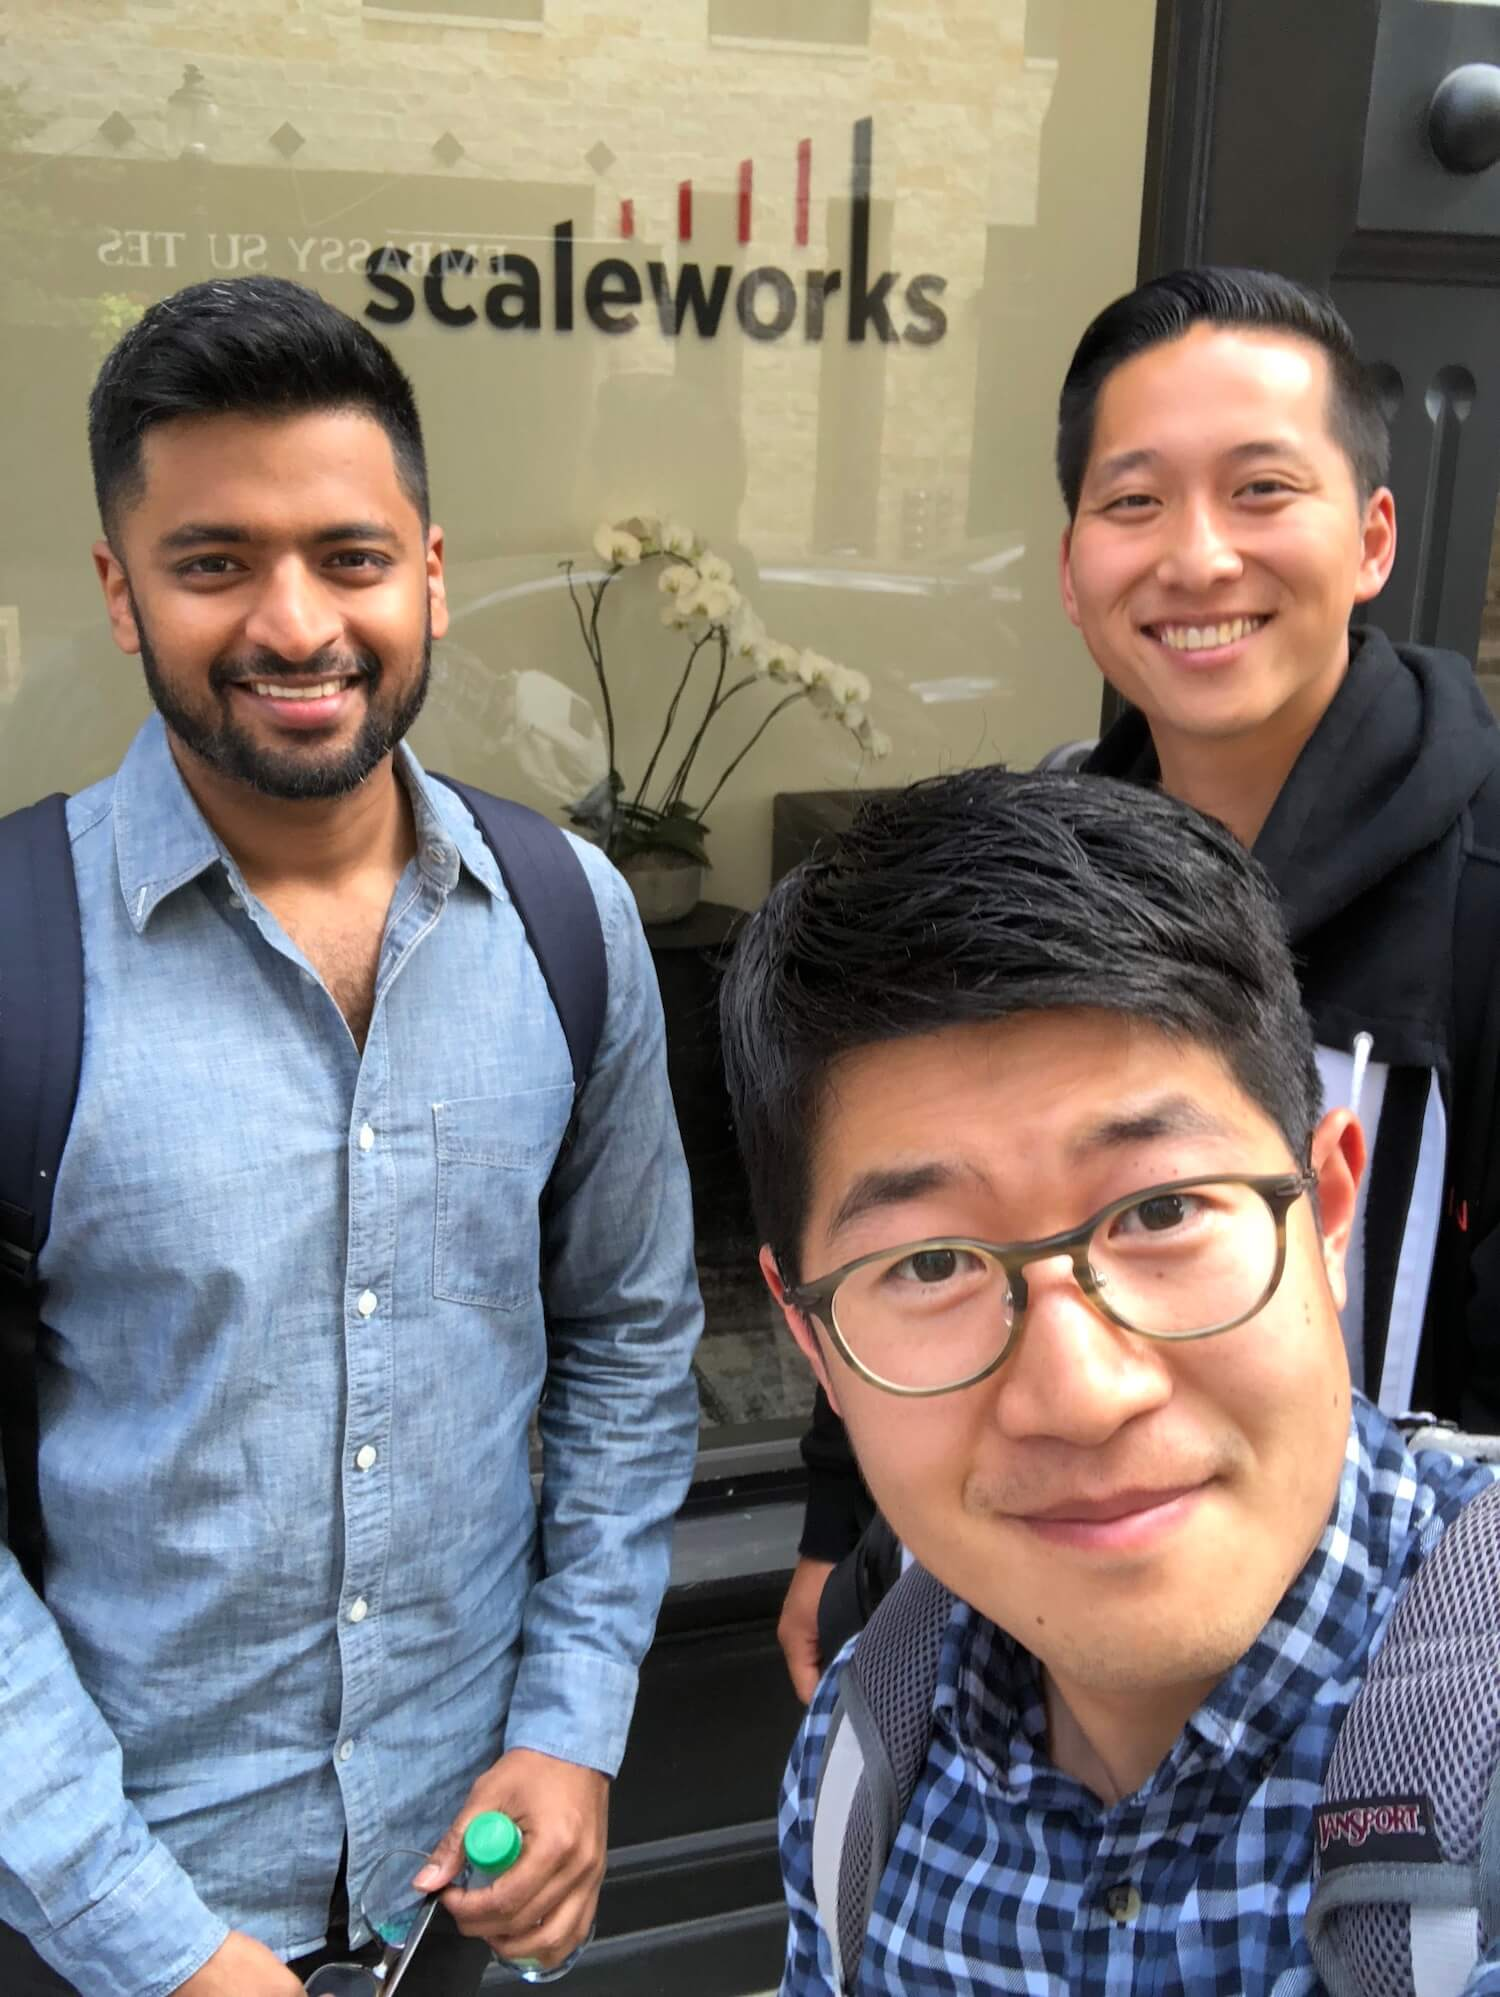 Cofounders at Scaleworks